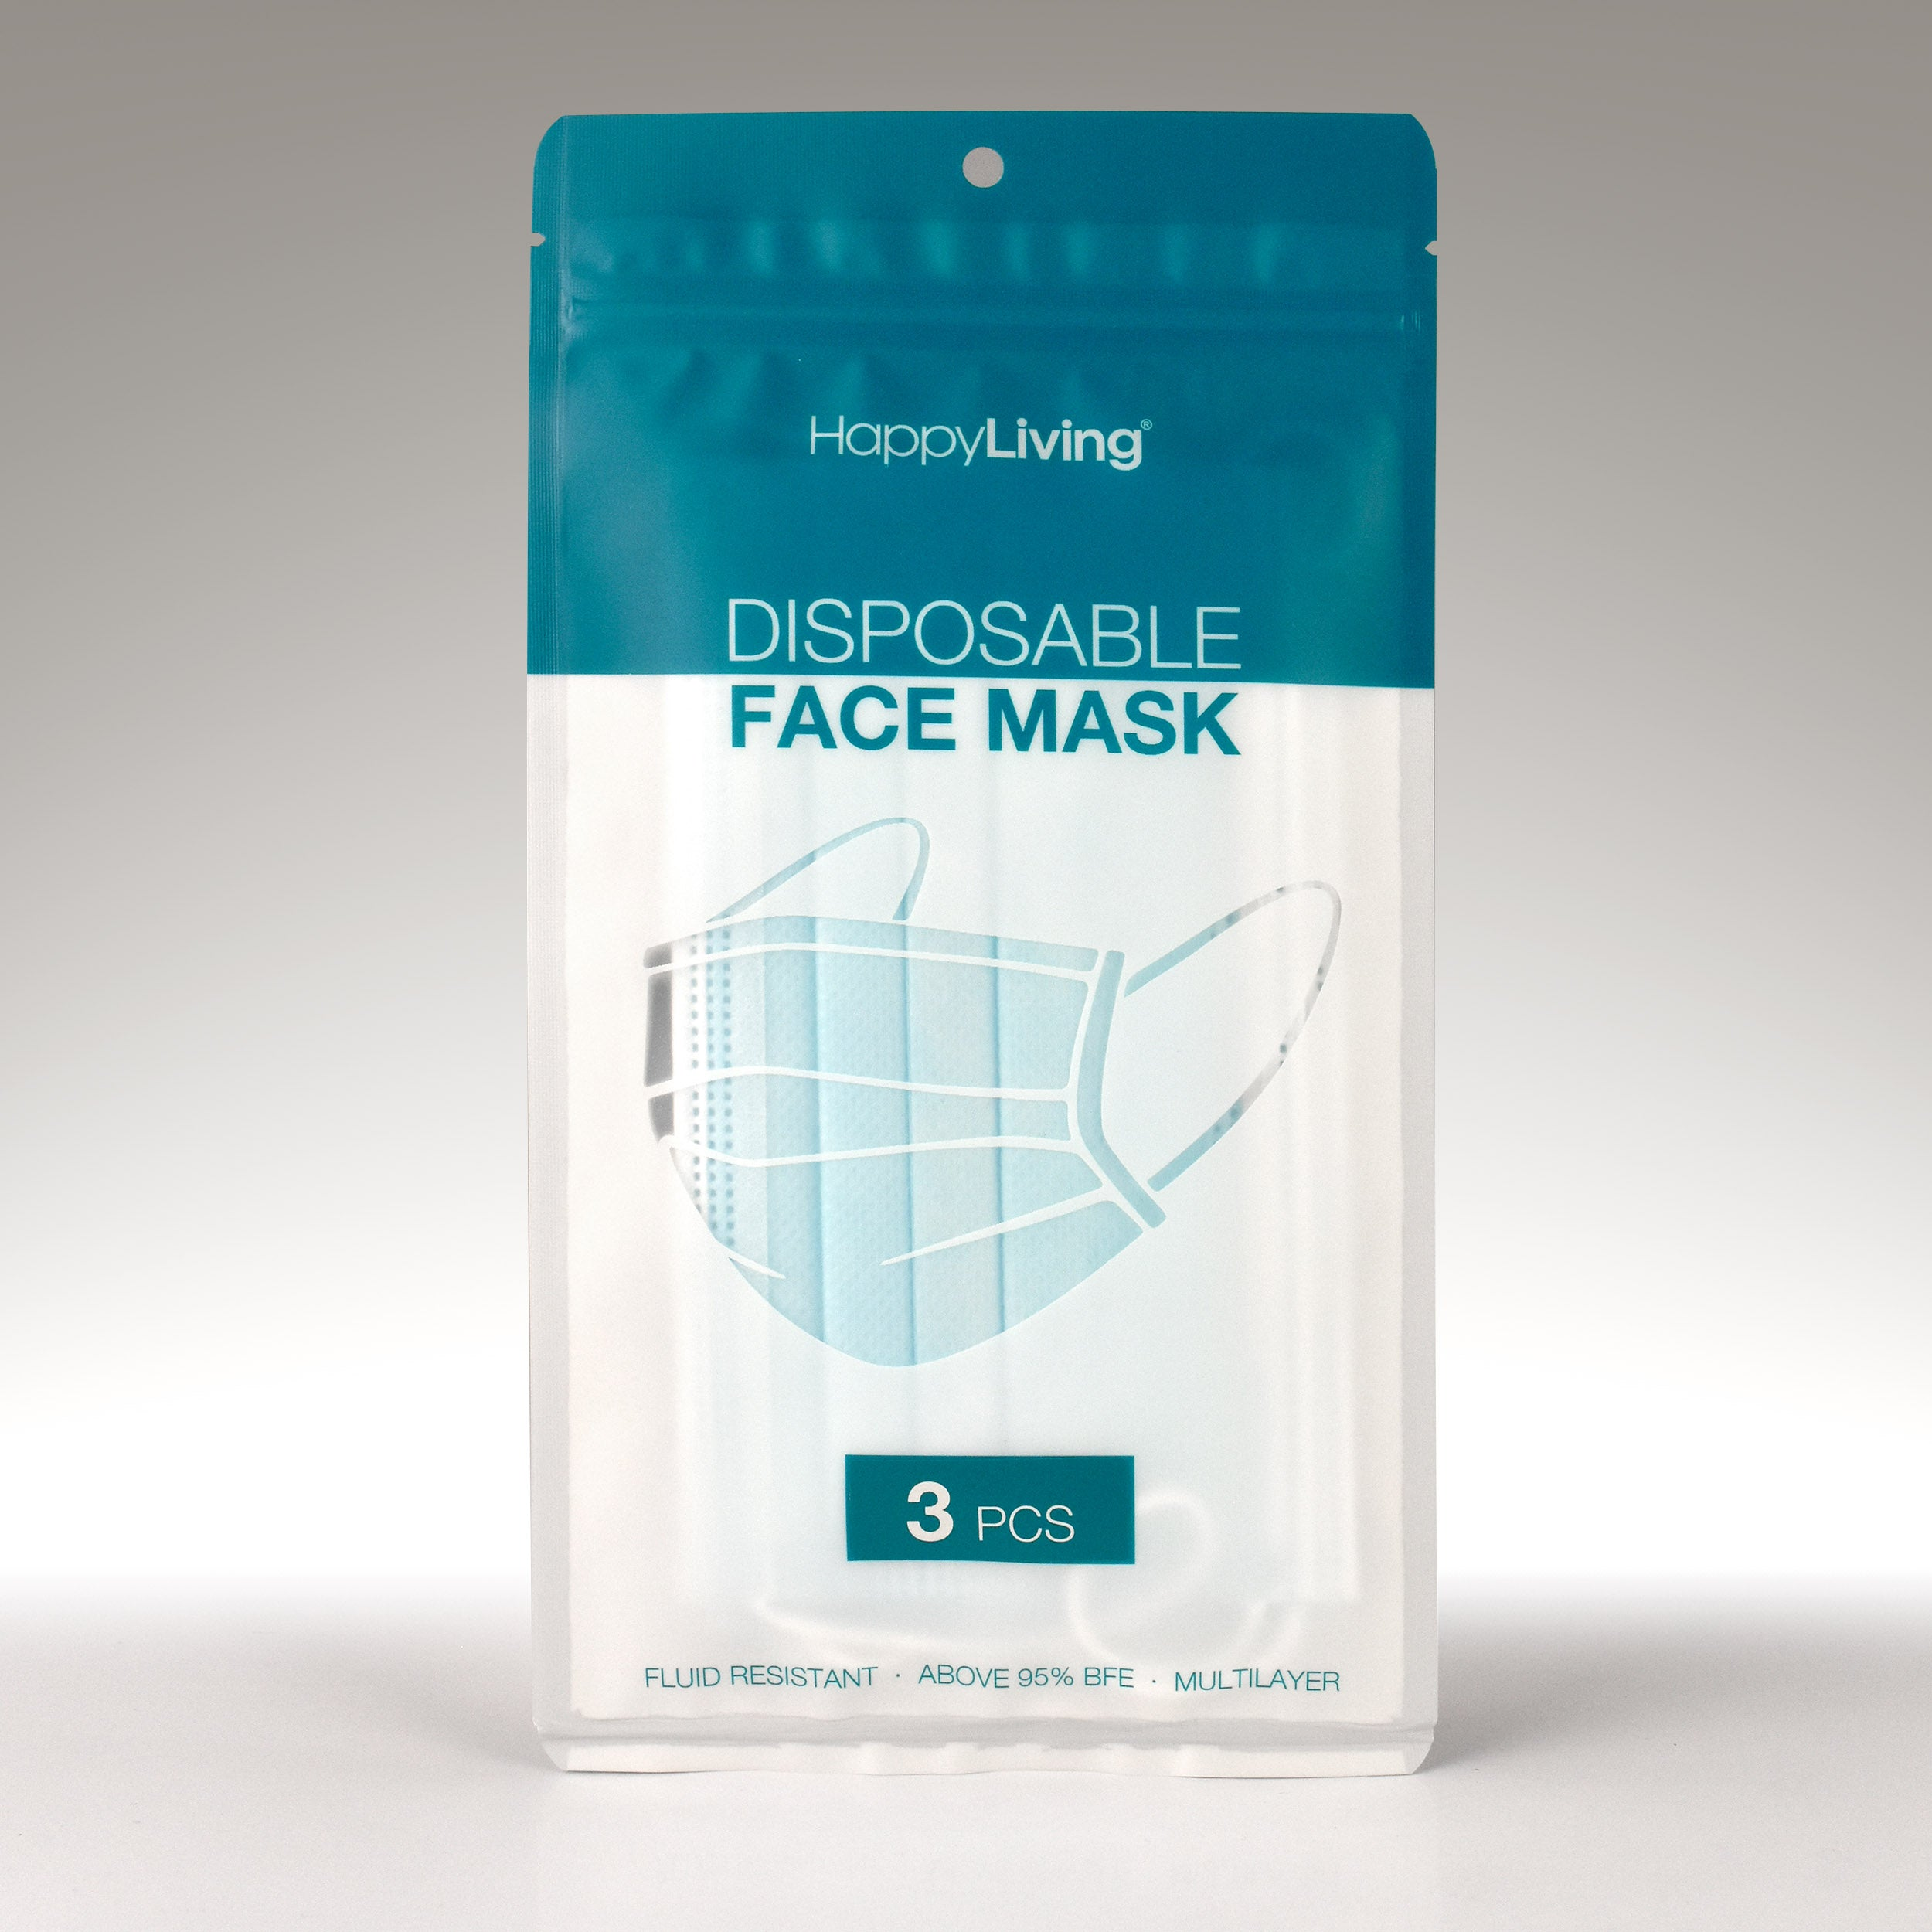 An image of a pack of 3 disposable face mask.